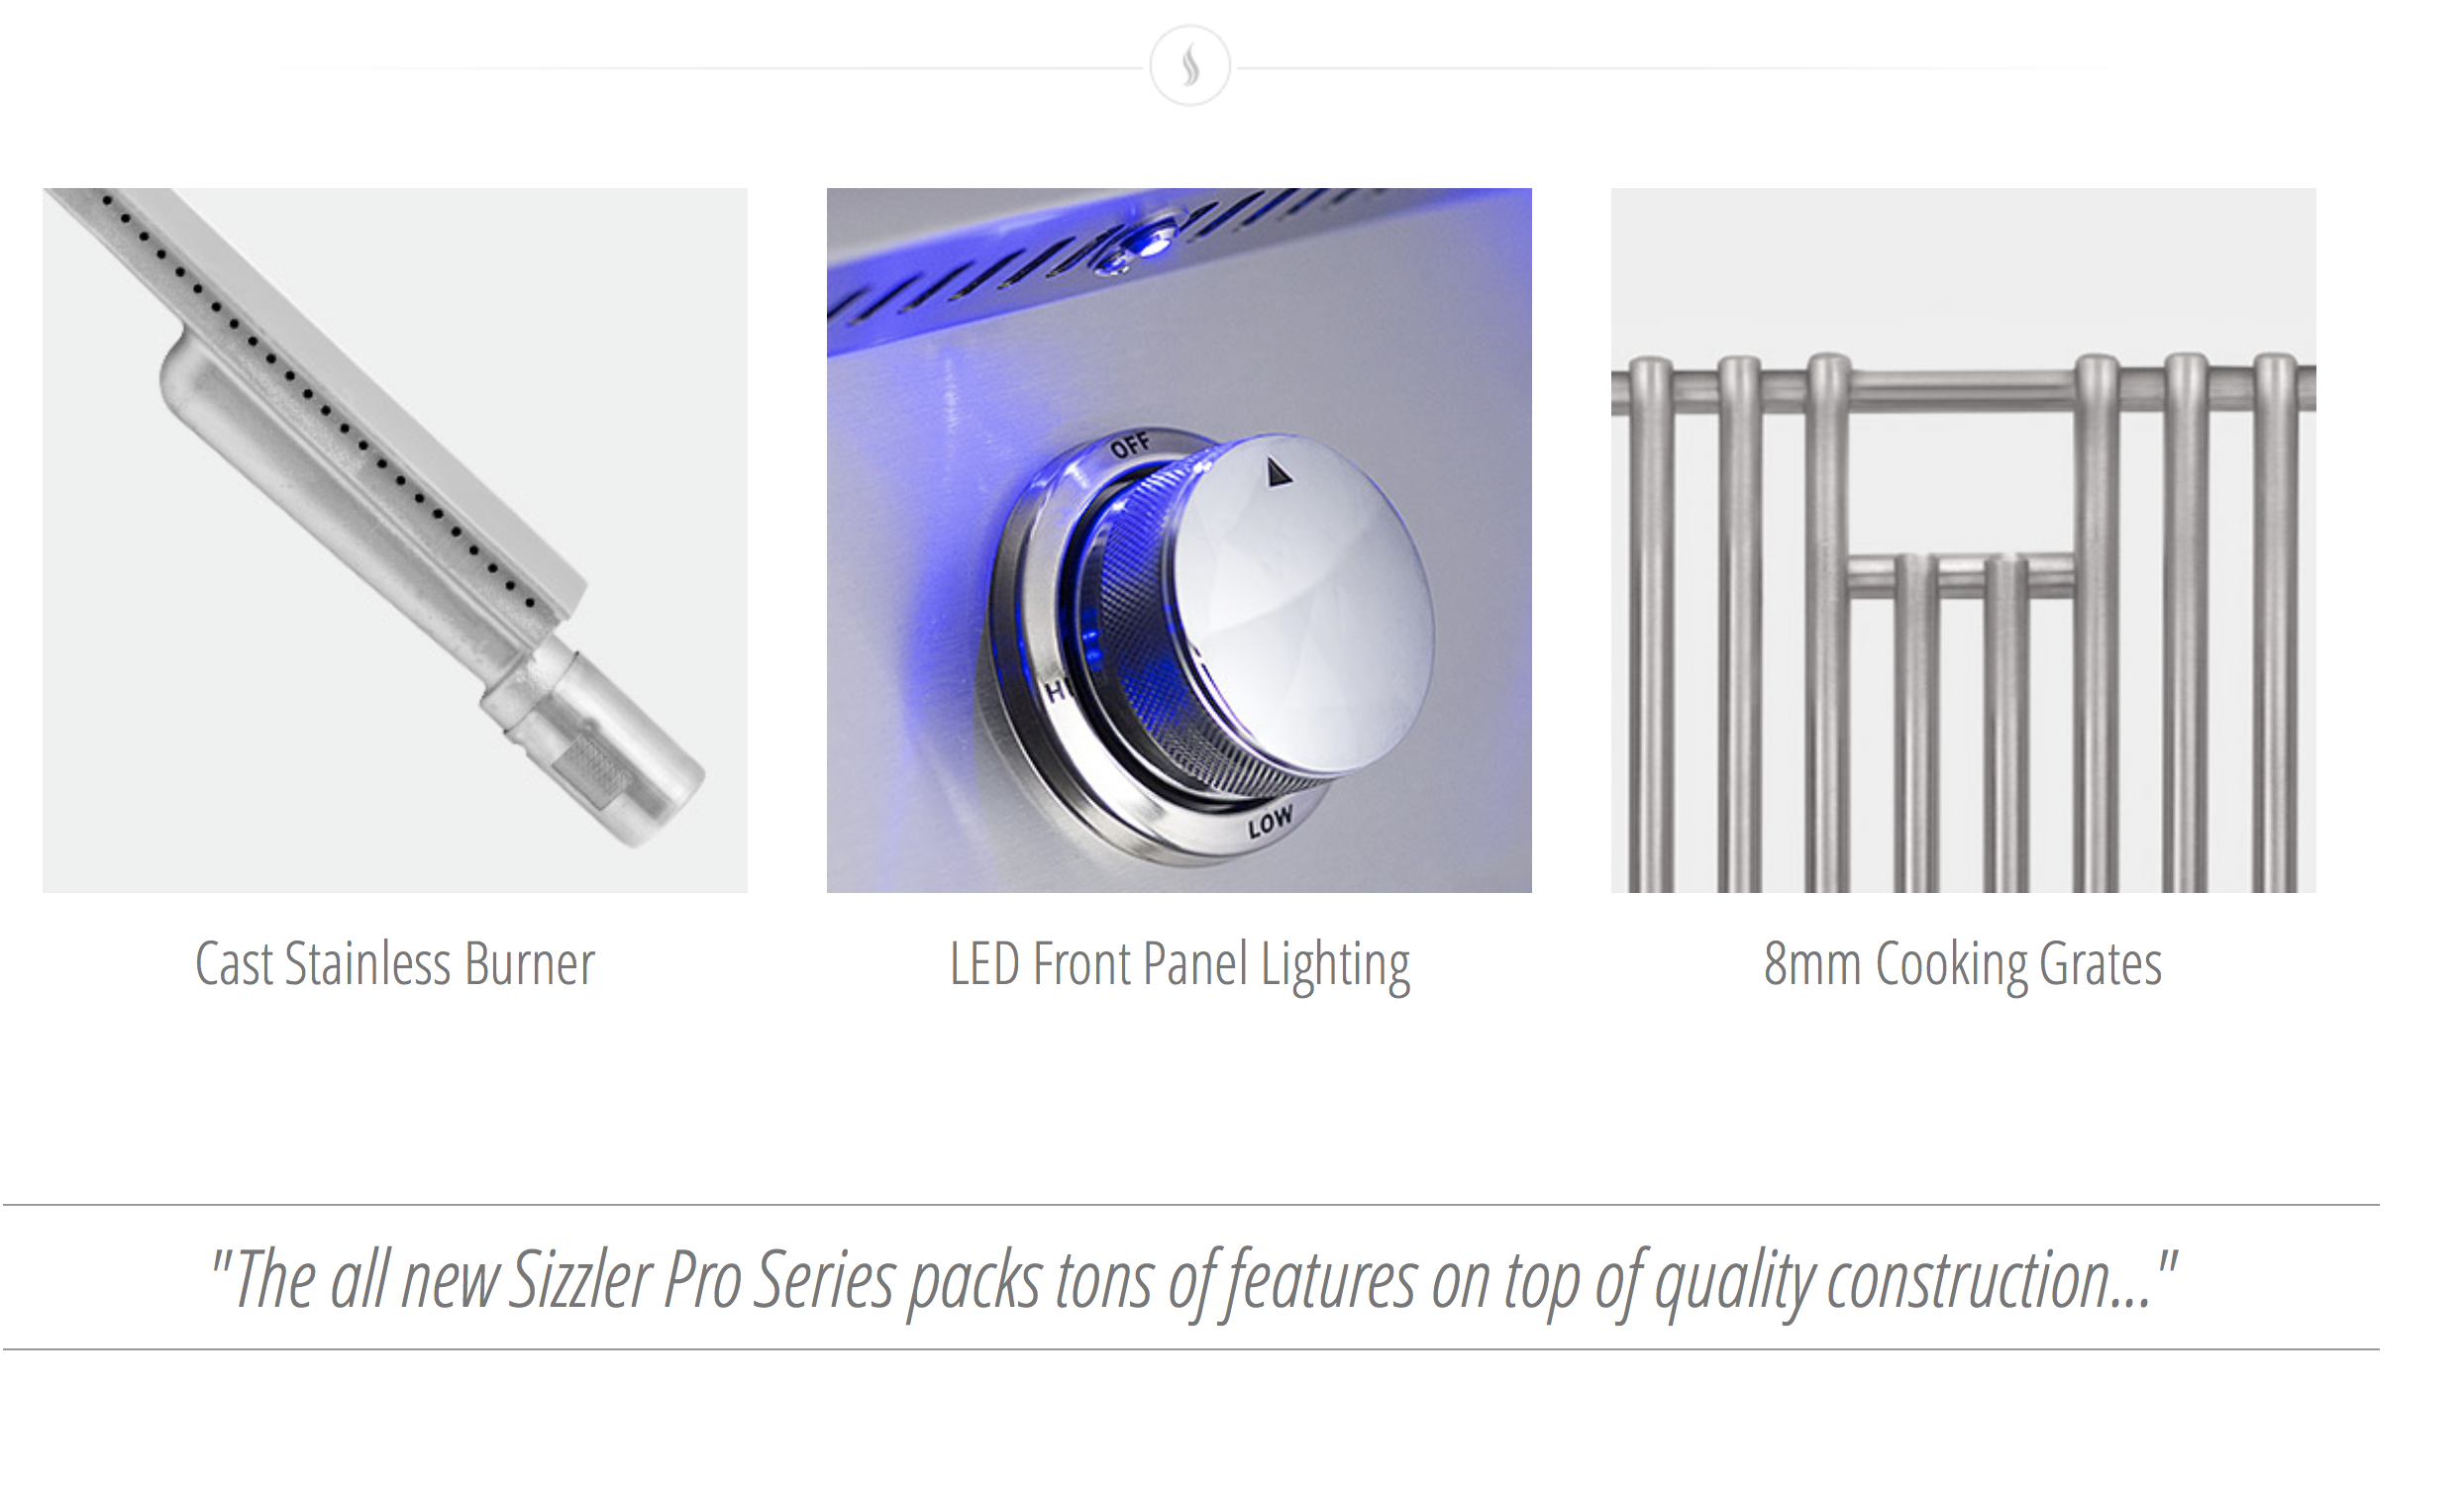 Features and Upgrades For Sizzler Pro Series, upgrade to LED lighting and cast stainless steel burners